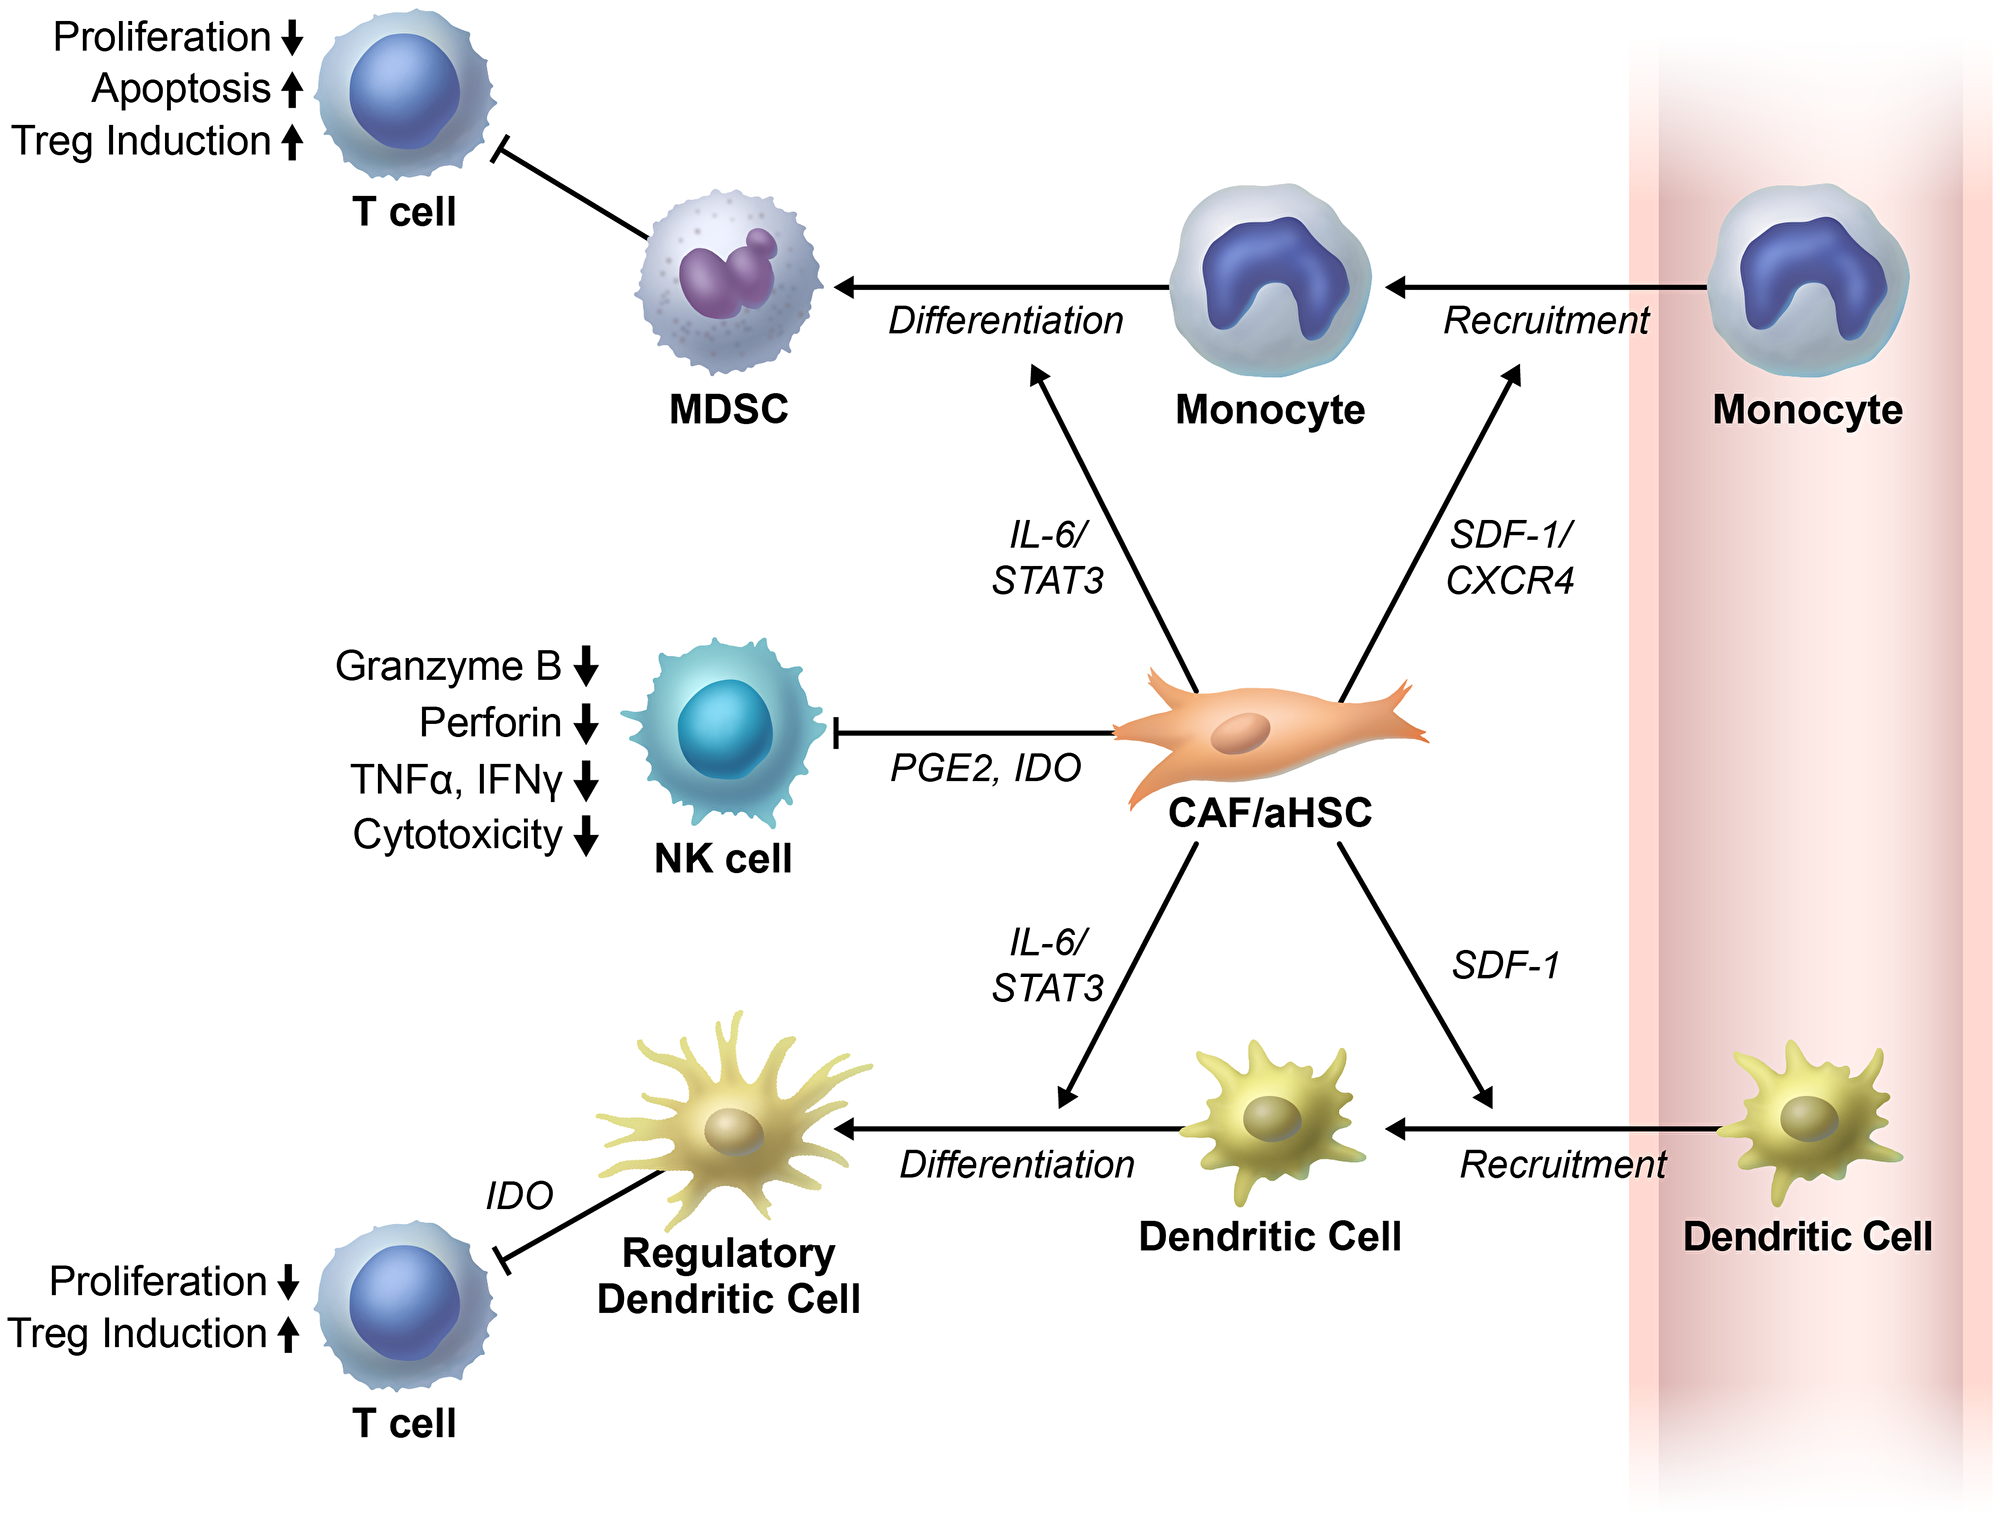 Cancer associated fibroblasts/activated hepatic stellate cells regulate immune cells in tumor microenvironment.